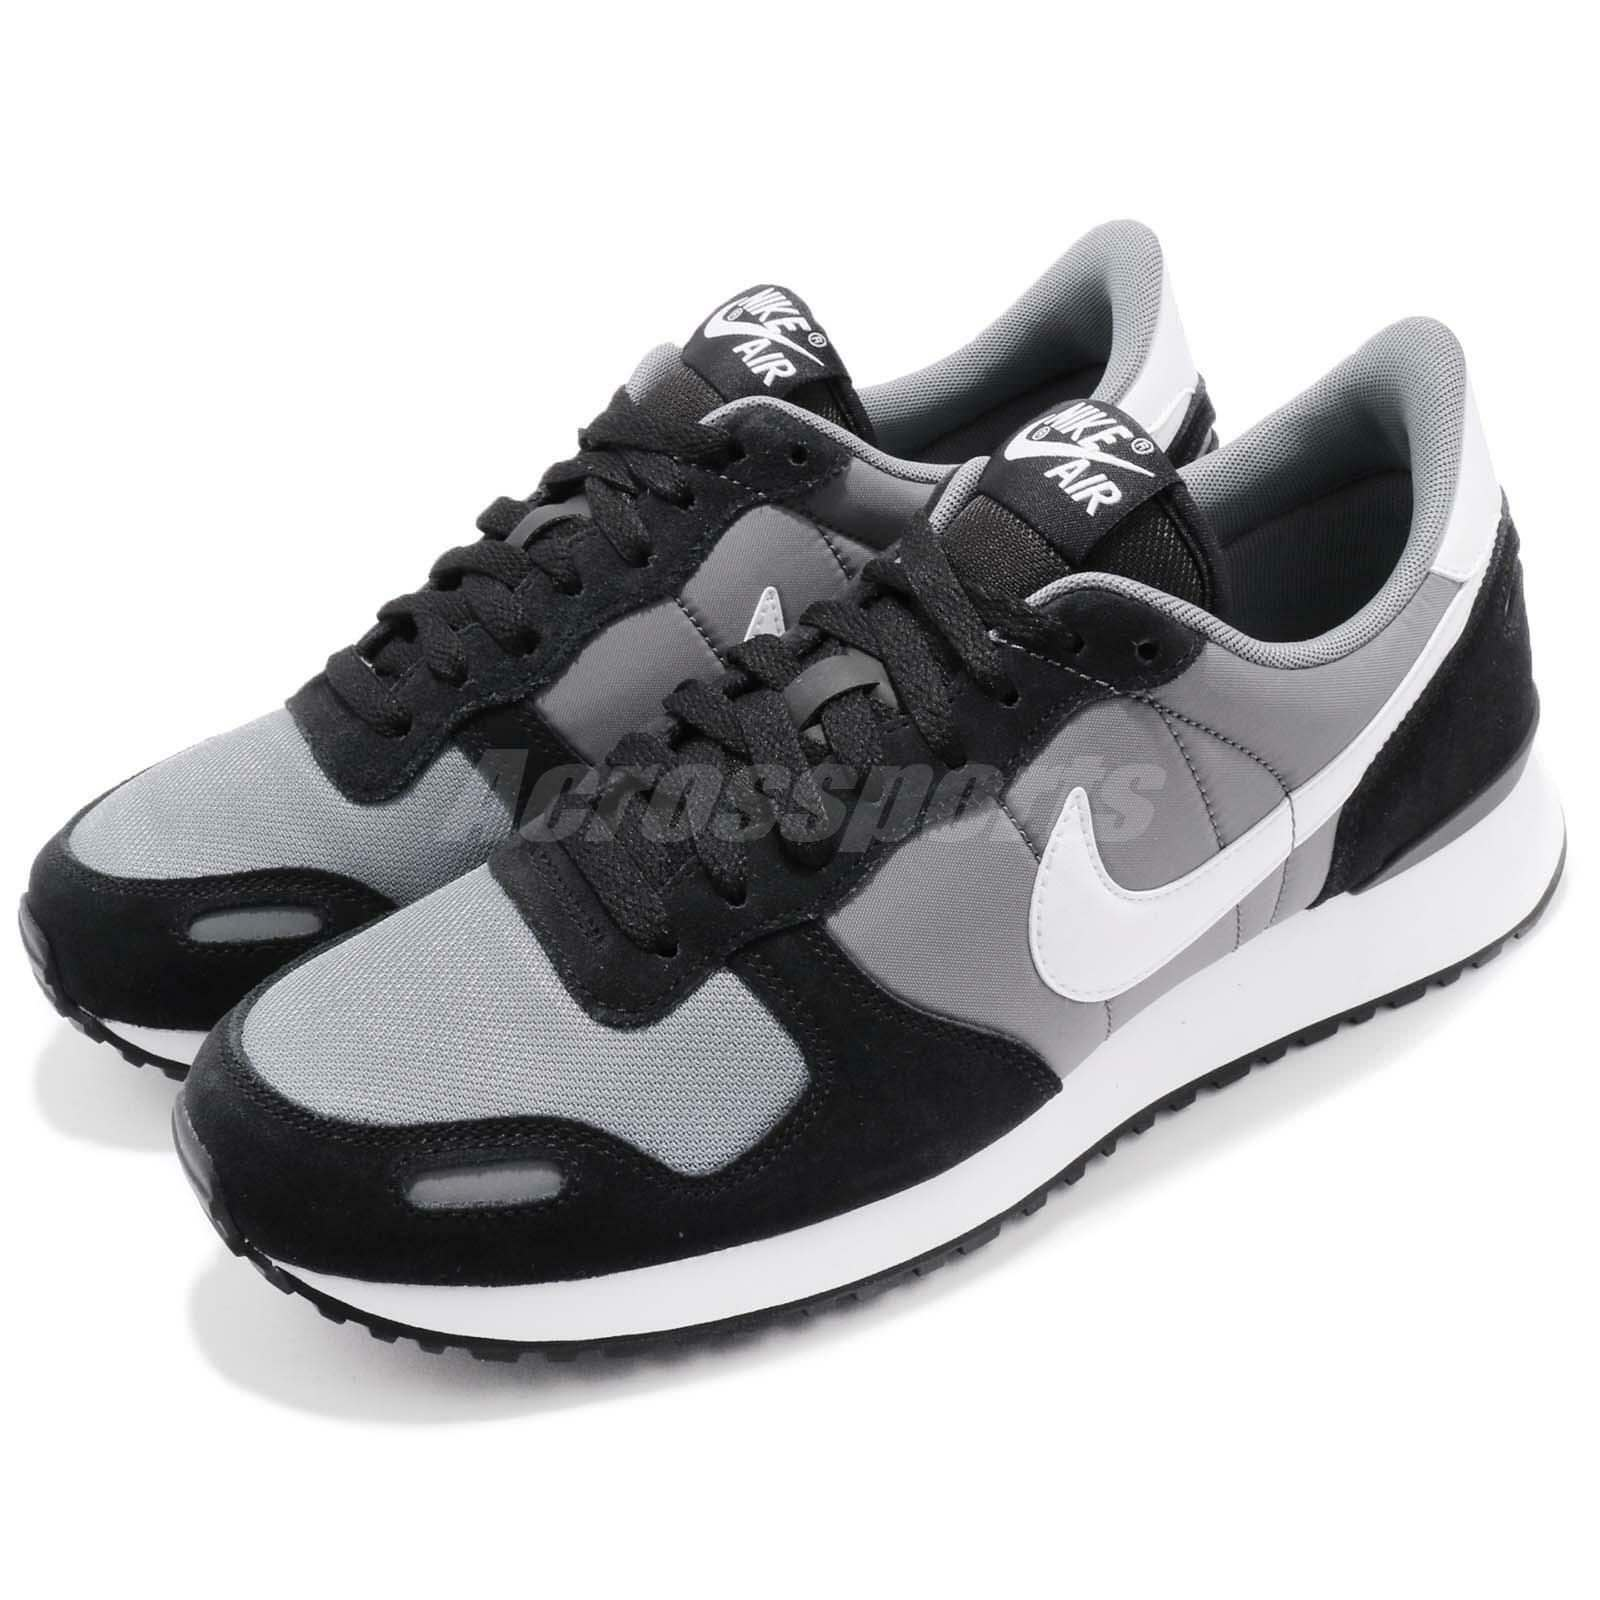 Nike Air VRTX Vortex Black White Grey Vintage Men Running Shoes